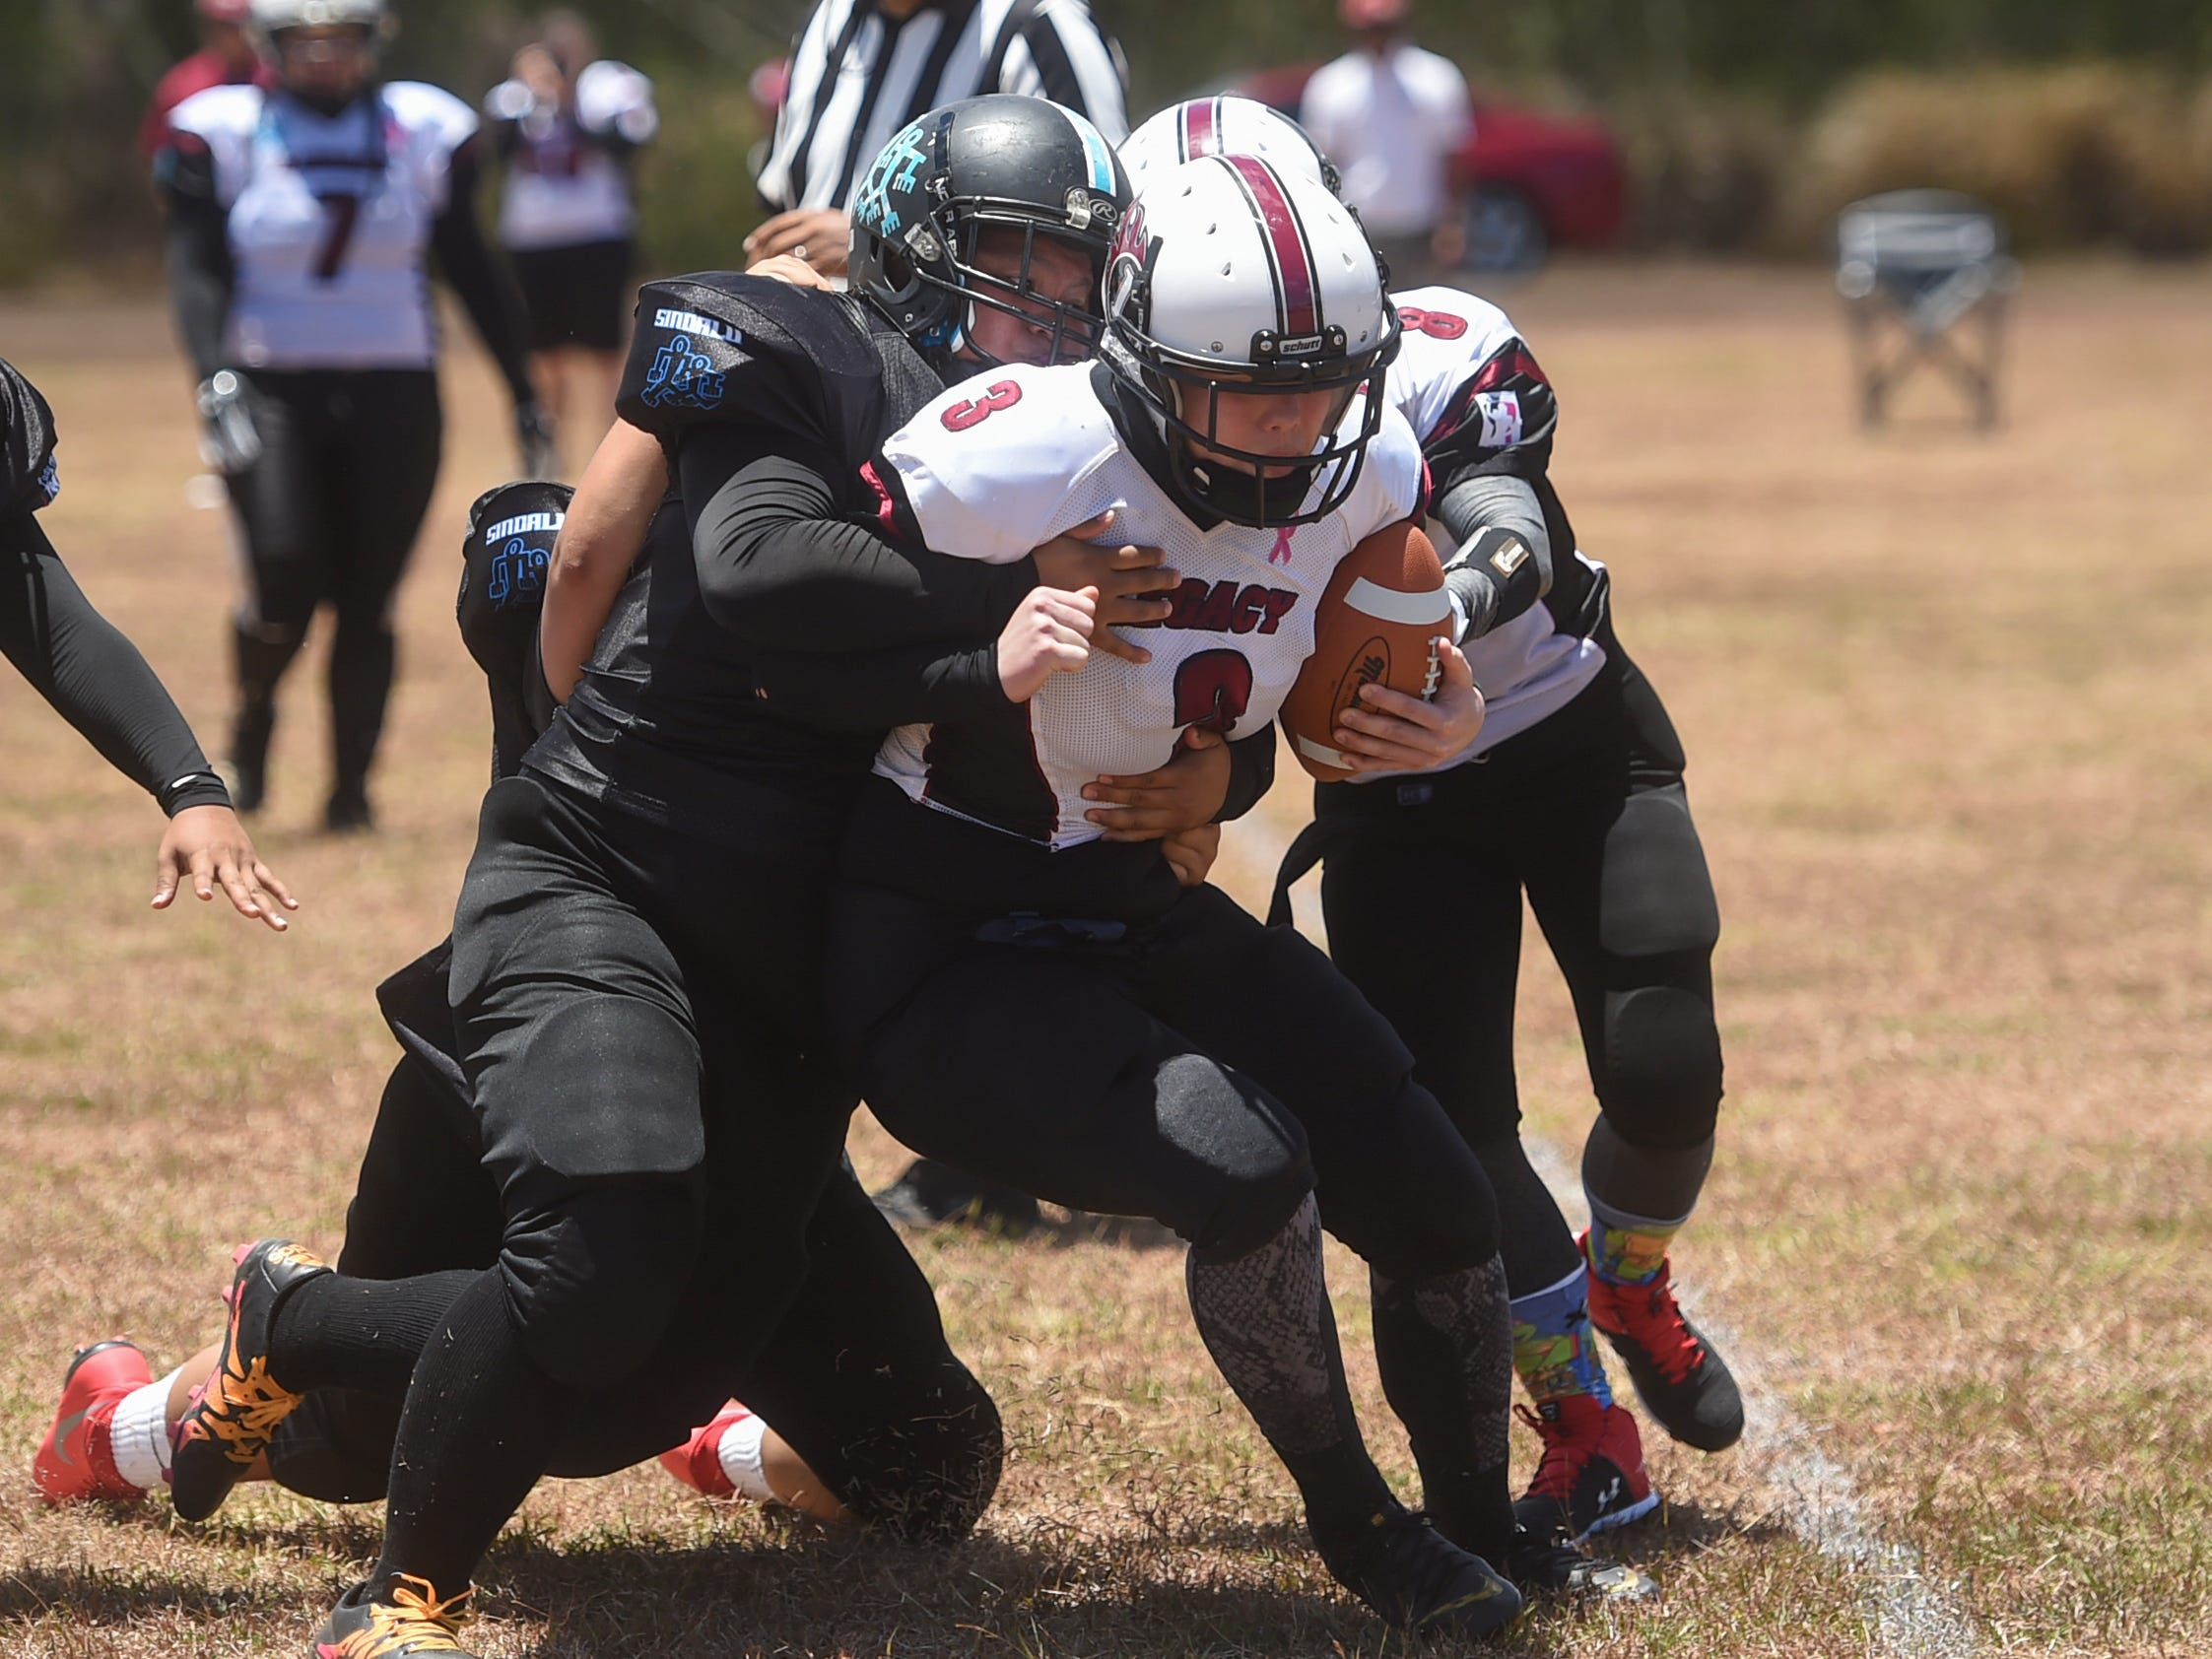 The Sindalu/Raiders' defense takes down Legacy quarterback Kalanie Martinez (8) during their 2019 Bud Light GWTFL game at the University of Guam Field in Mangilao, May 11, 2019. Legacy came away with a 20-0 victory for their second game of the season.